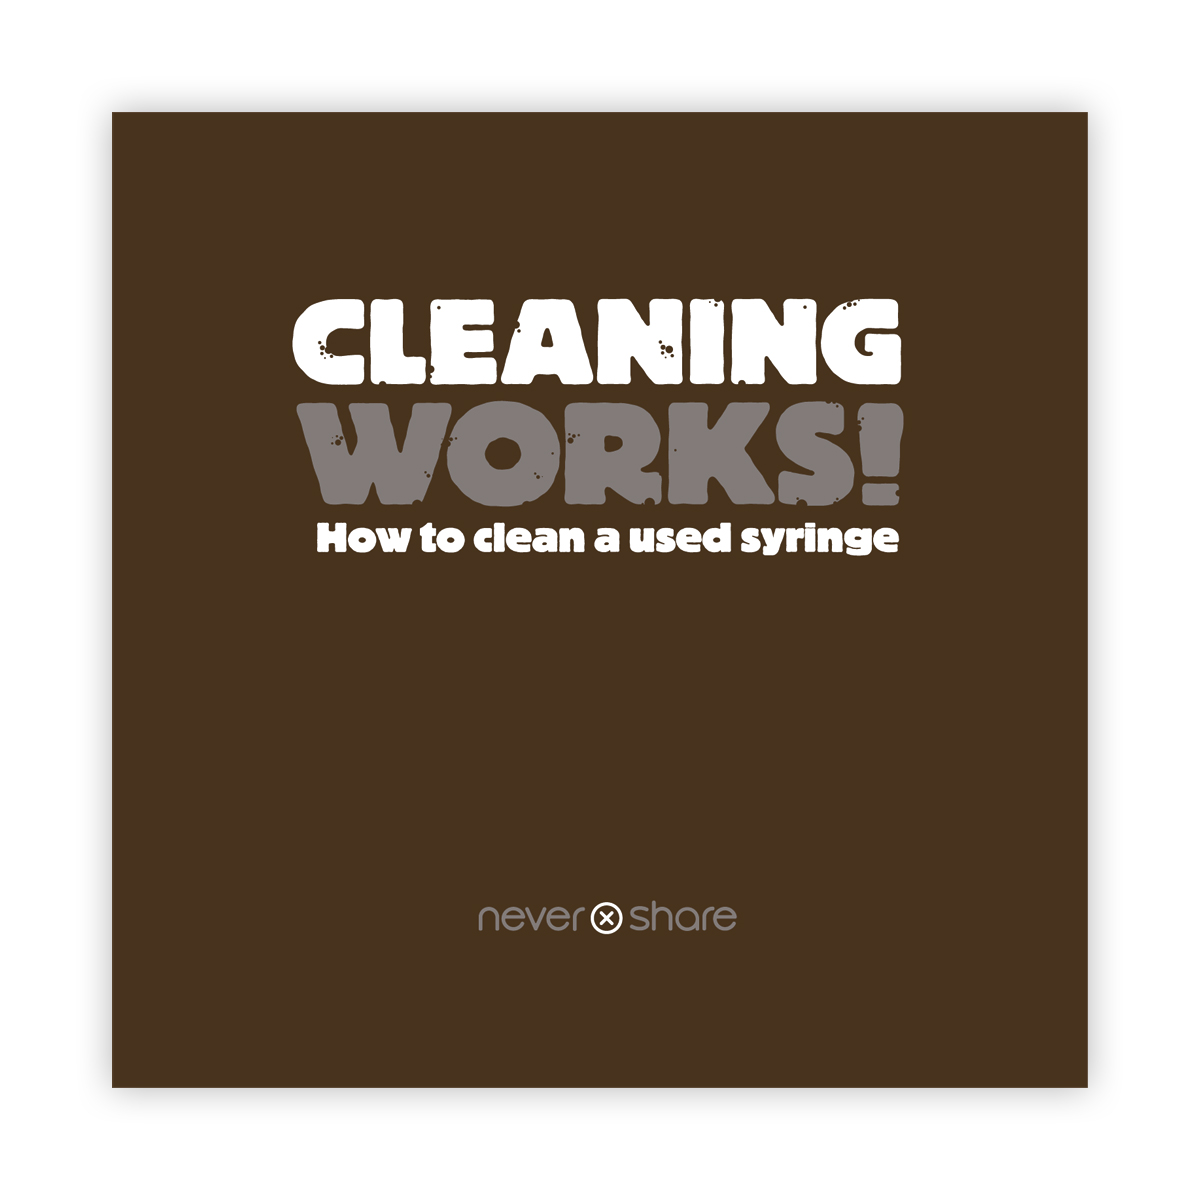 Cleaning works!